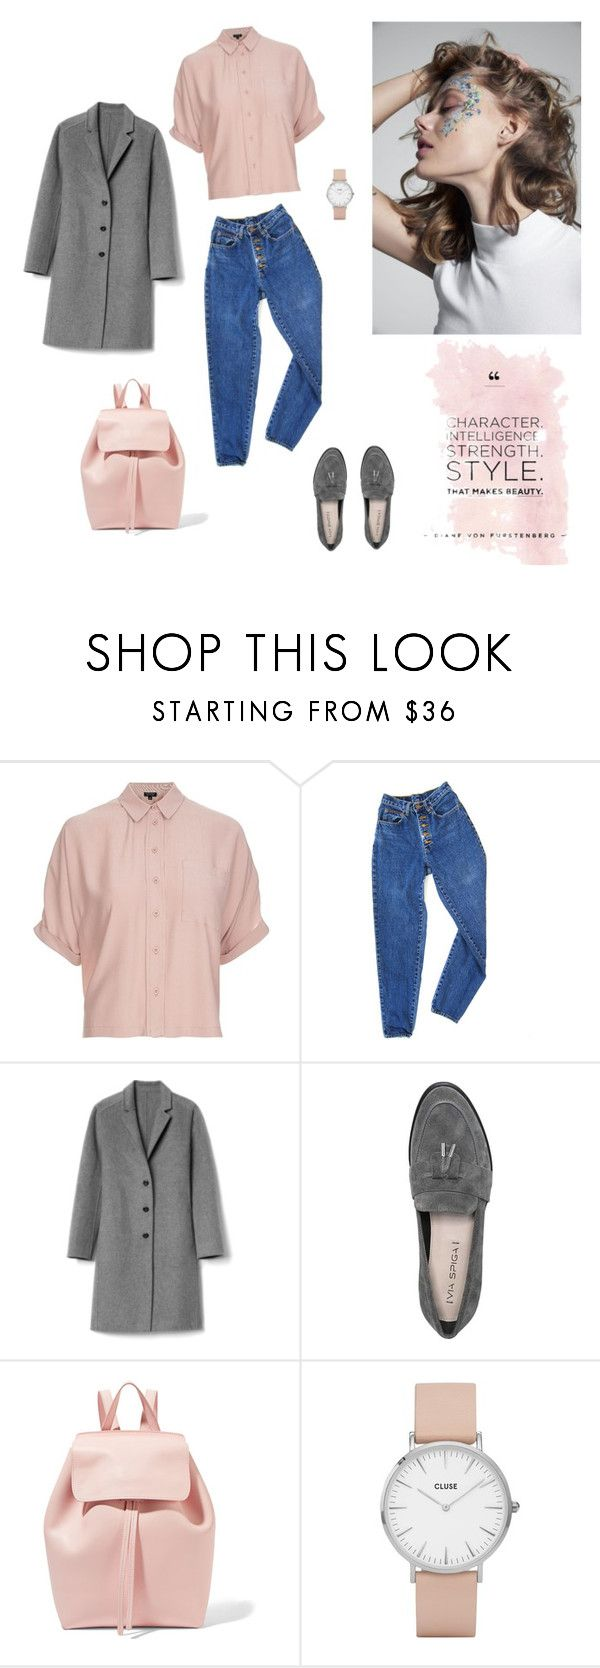 """05/03"" by dorey on Polyvore featuring Topshop, PèPè, Gap, Via Spiga, Mansur Gavriel and CLUSE"